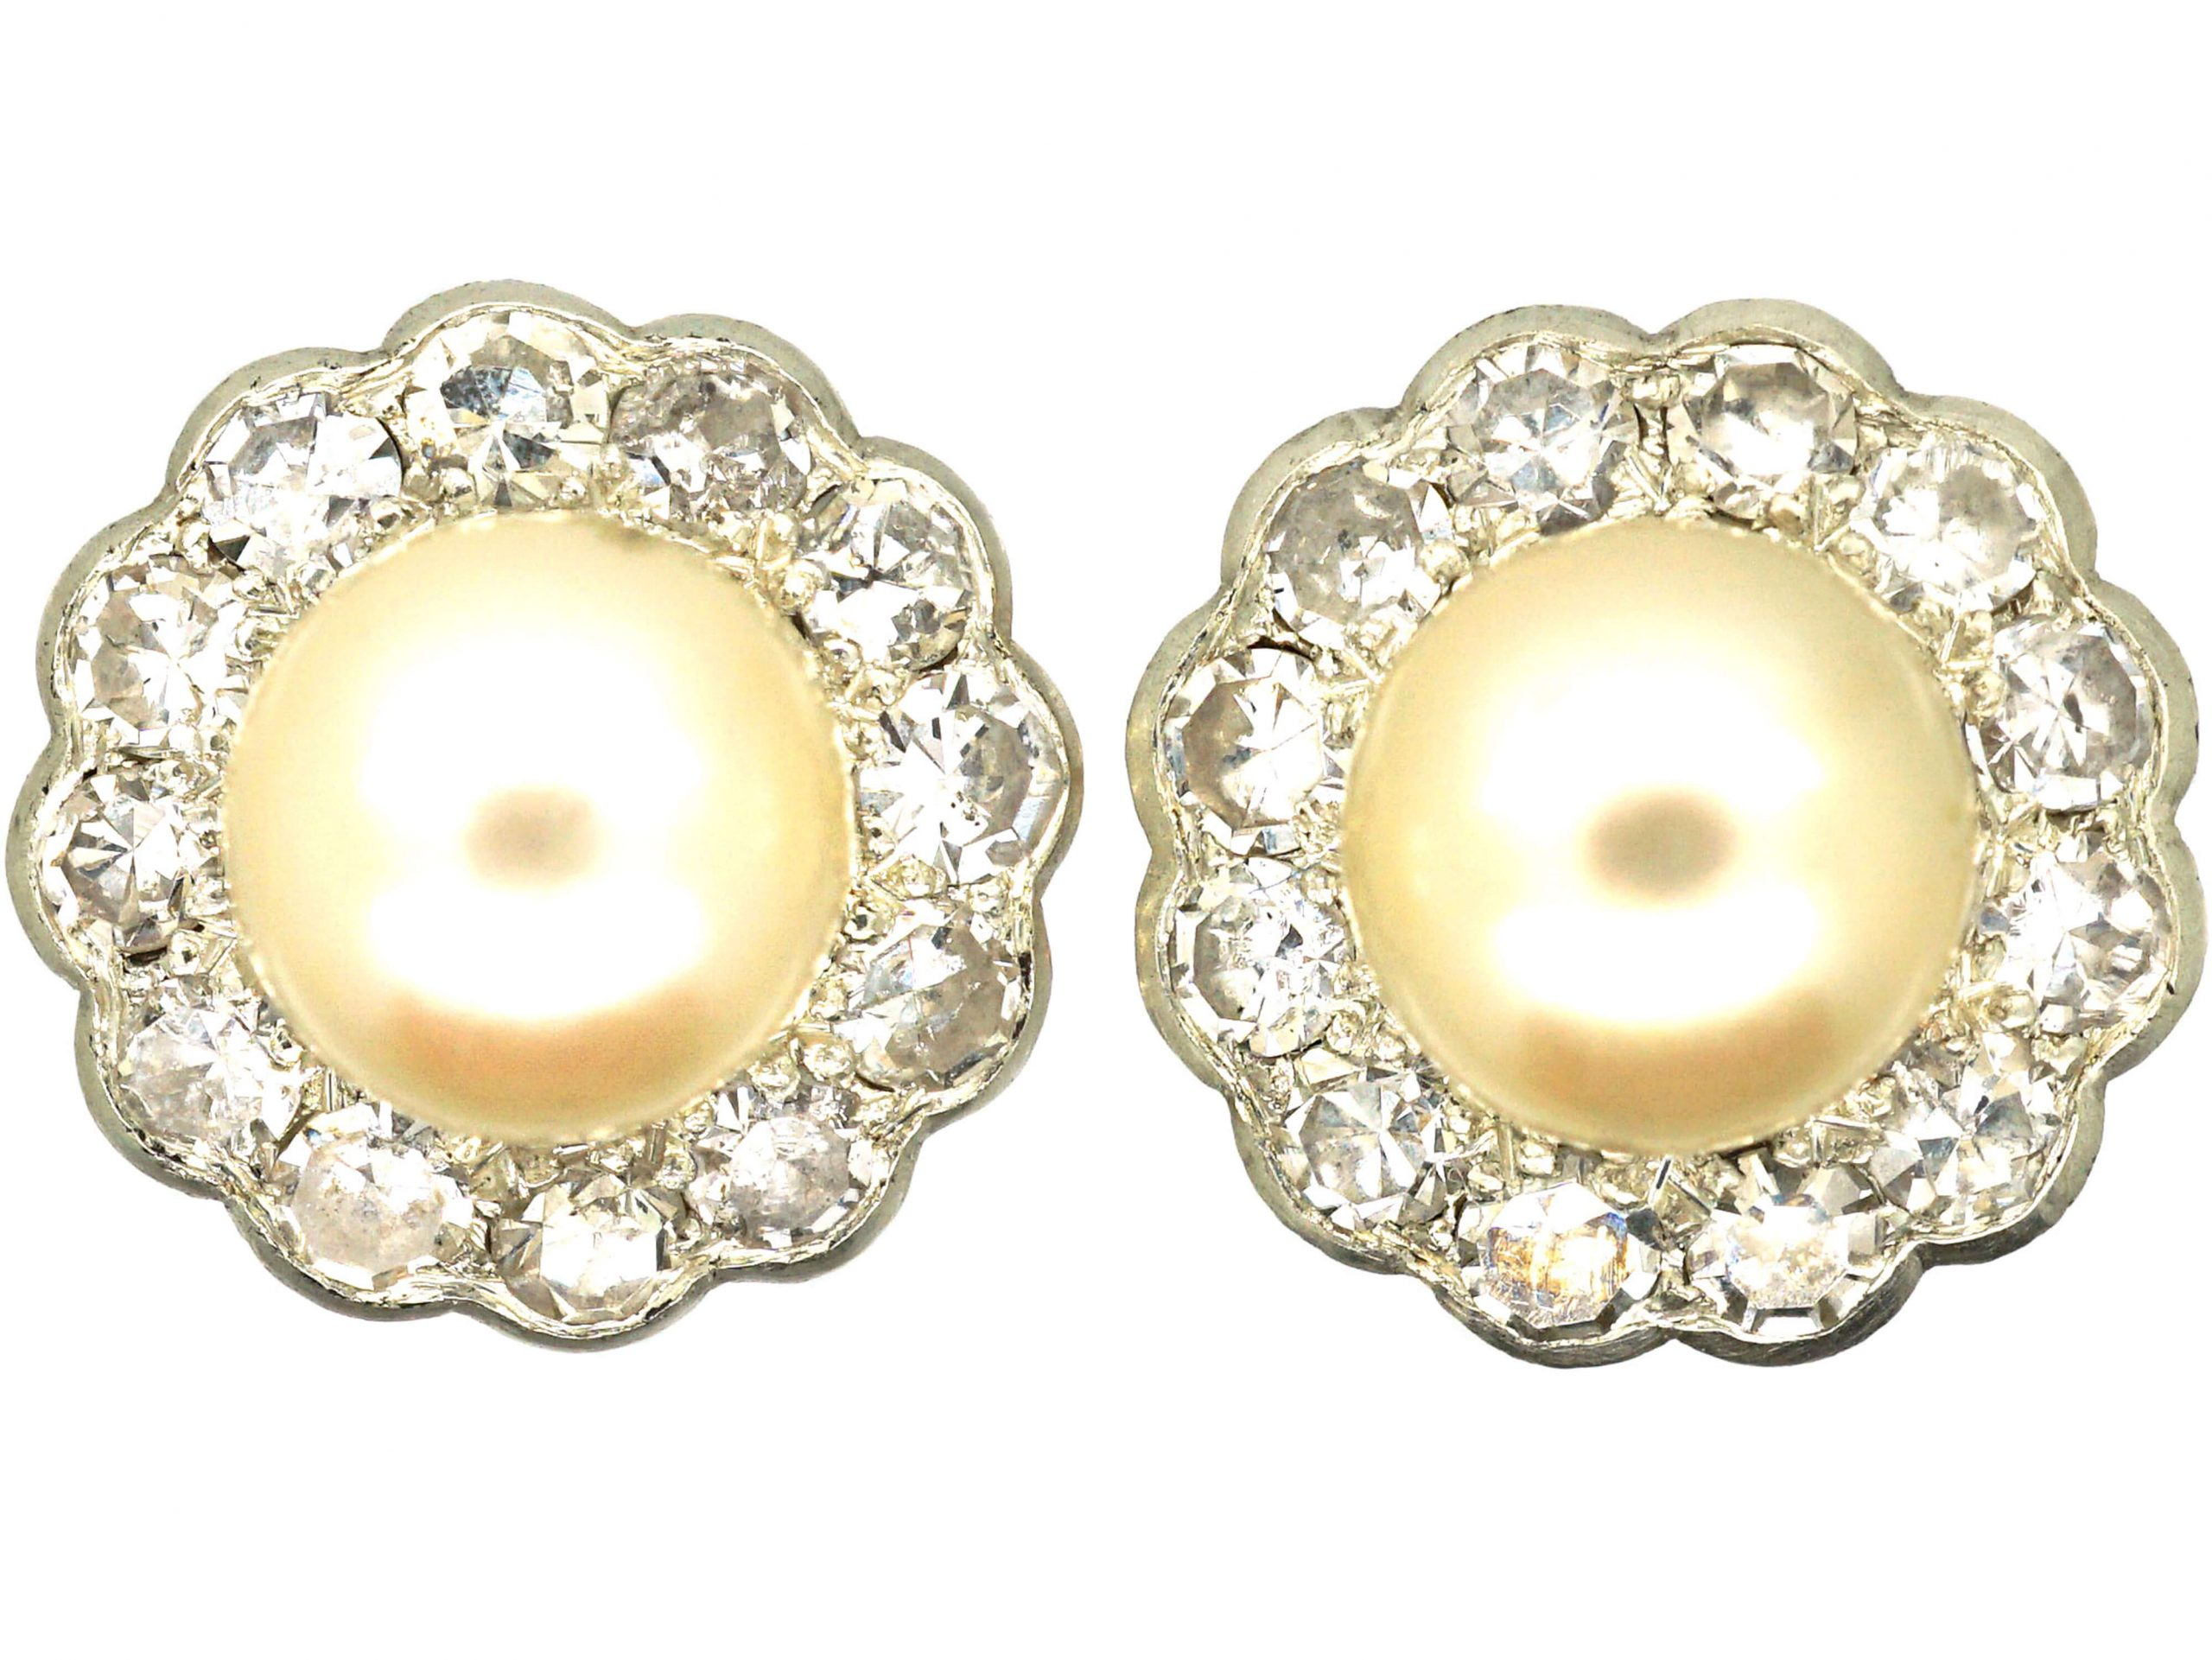 Edwardian 18ct White & Yellow Gold Cluster Earrings set with Diamonds & Natural Pearls